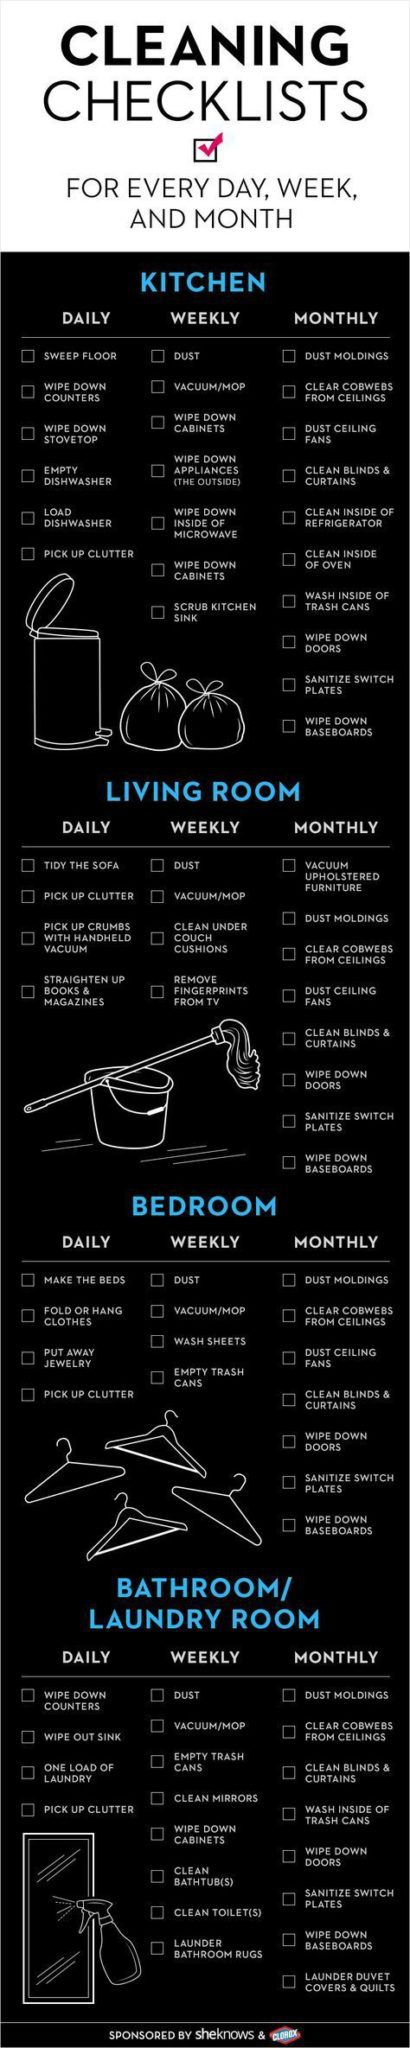 These house cleaning hacks are AMAZING! I am so glad I found these to help me ORGANIZE and CLEAN my entire home. With spring around the corner, this list is perfect! Pin this for later!